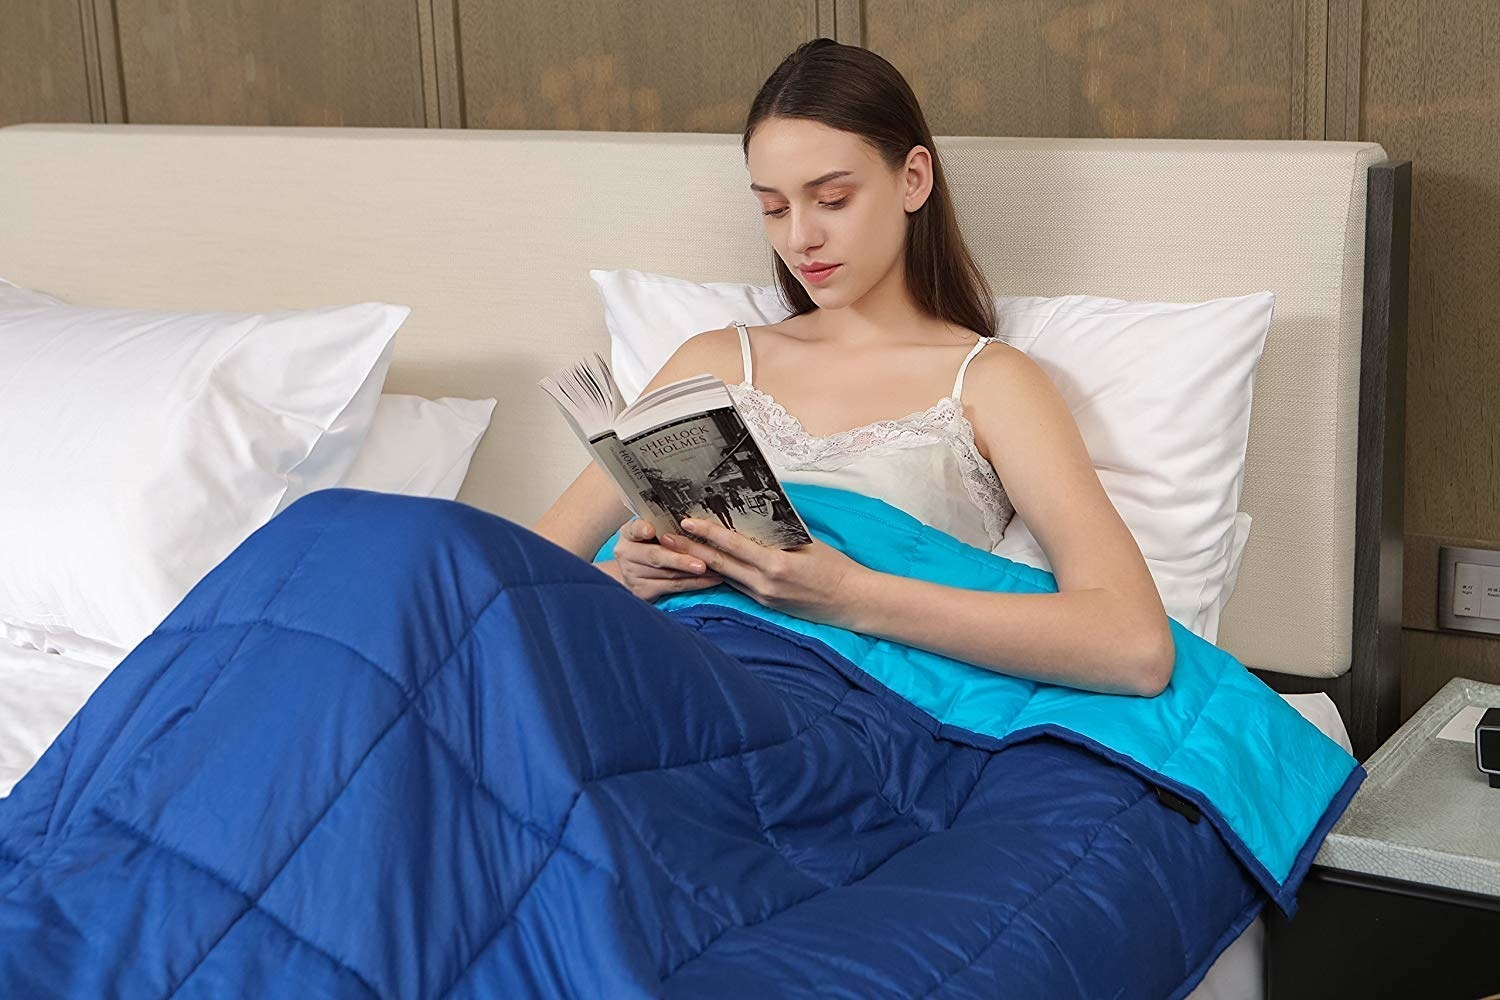 A person reading a book under the weighted blanket